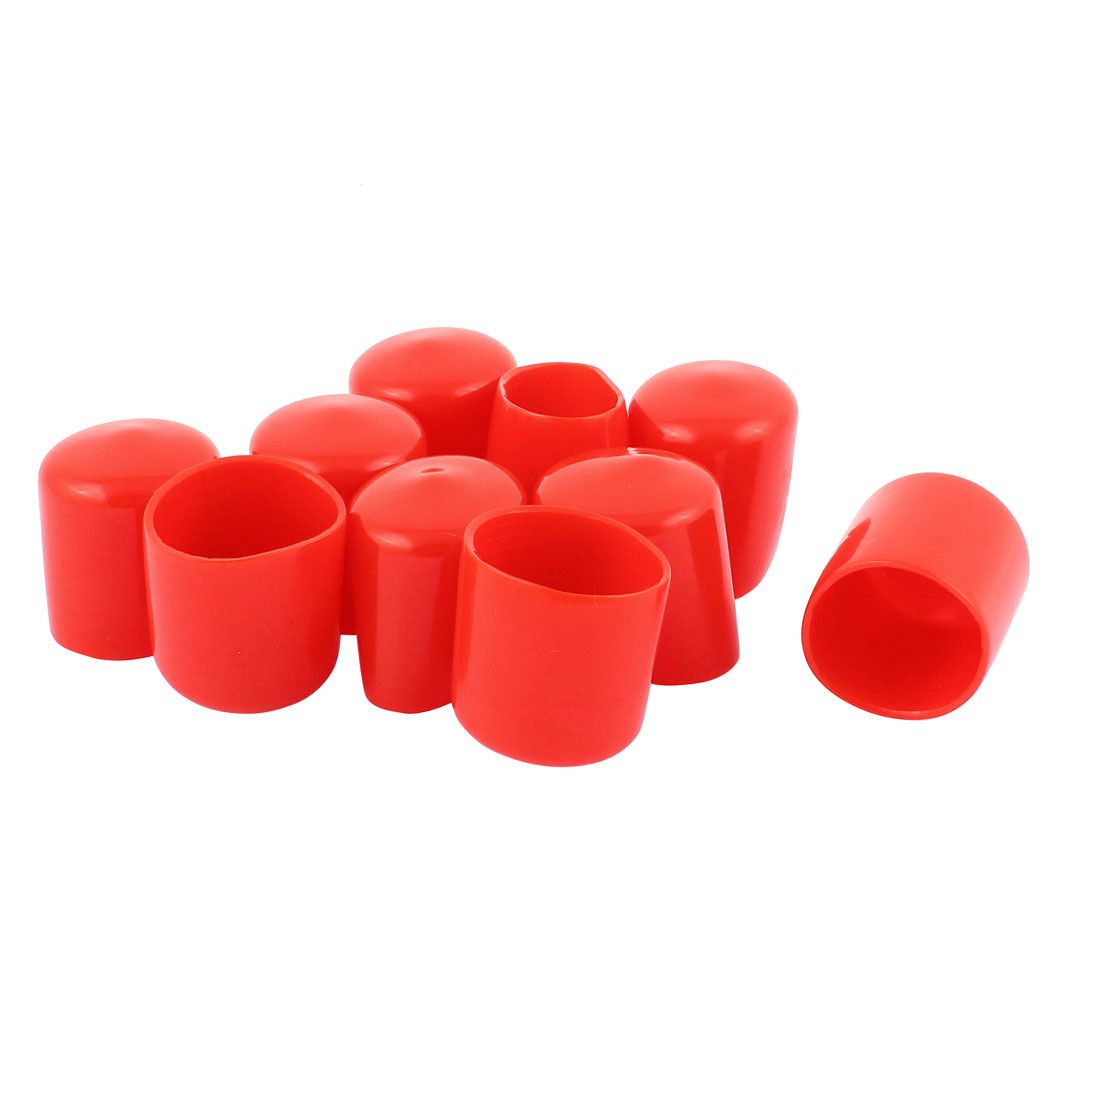 10pcs 36mm Inner Dia Vinyl End Cap Wire Cable Tube Cover Protector